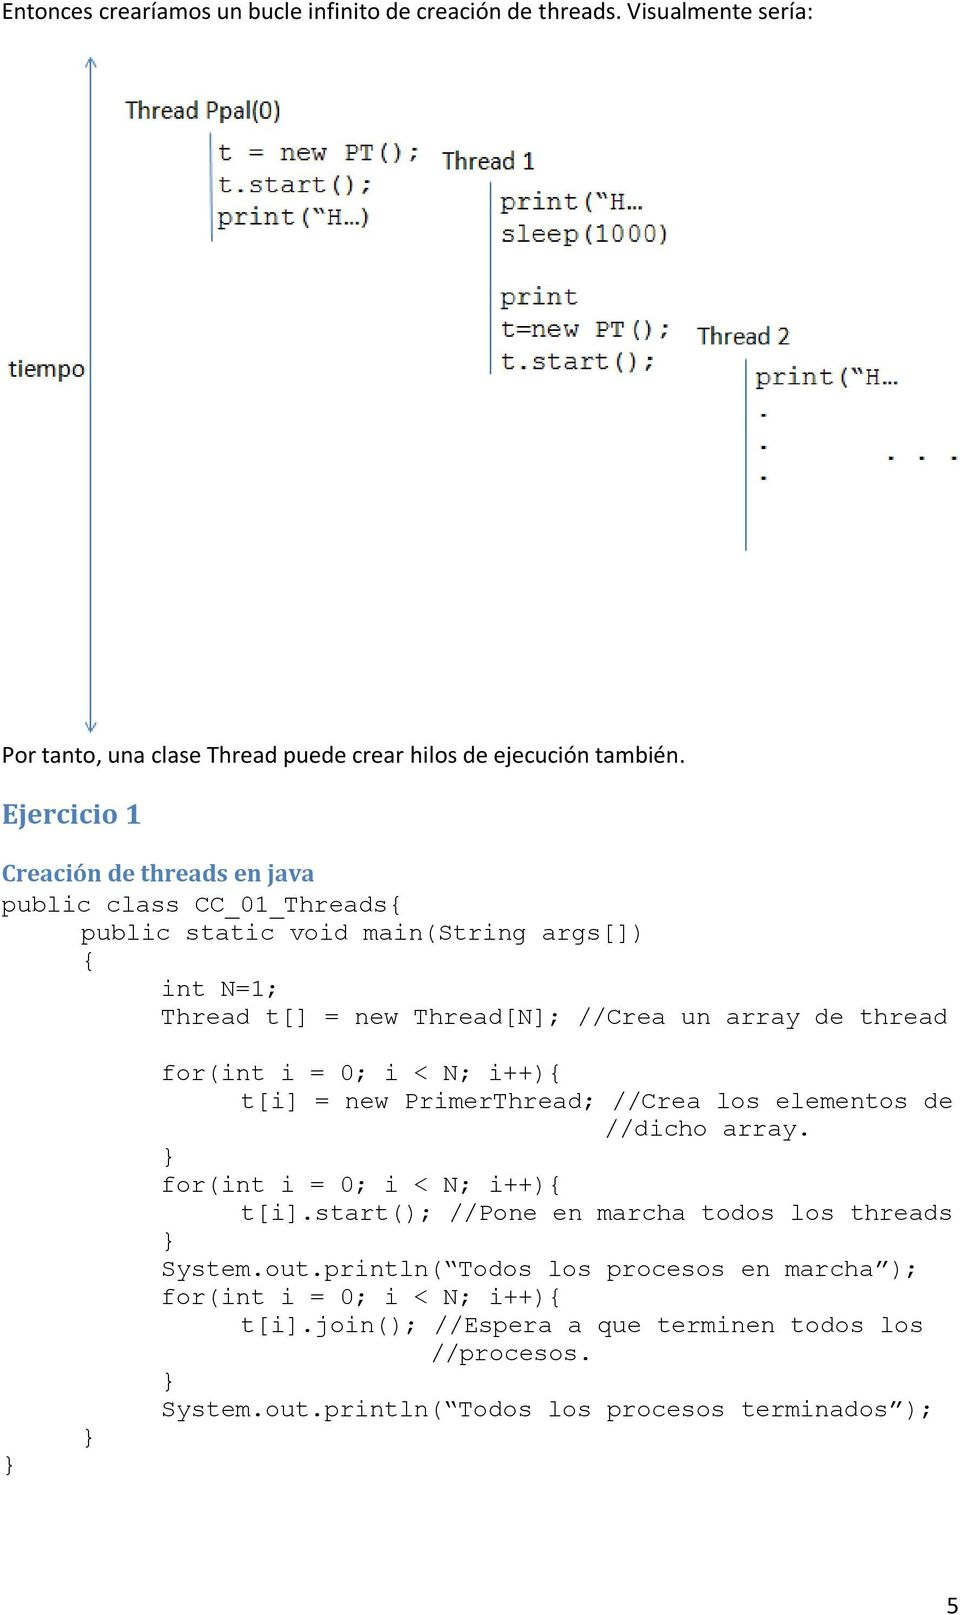 thread for(int i = 0; i < N; i++){ t[i] = new PrimerThread; //Crea los elementos de //dicho array. for(int i = 0; i < N; i++){ t[i].start(); //Pone en marcha todos los threads System.